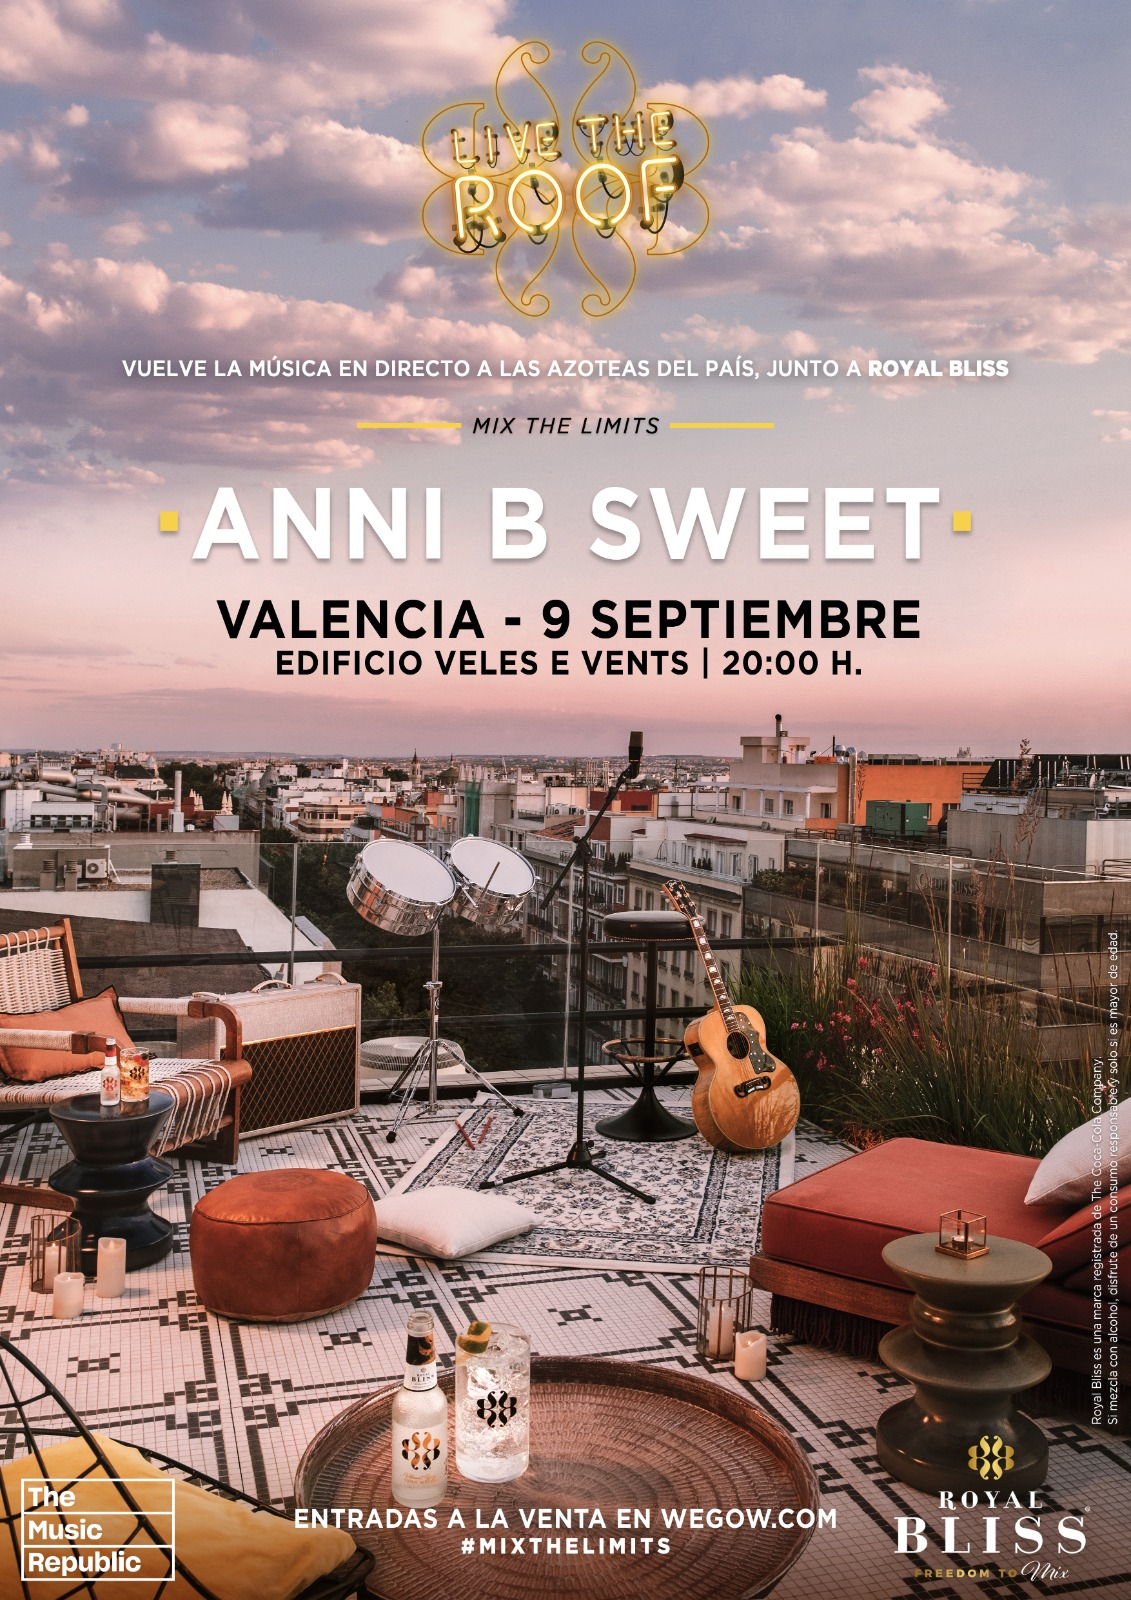 anni b sweet en live the roof valencia 1623915545986573